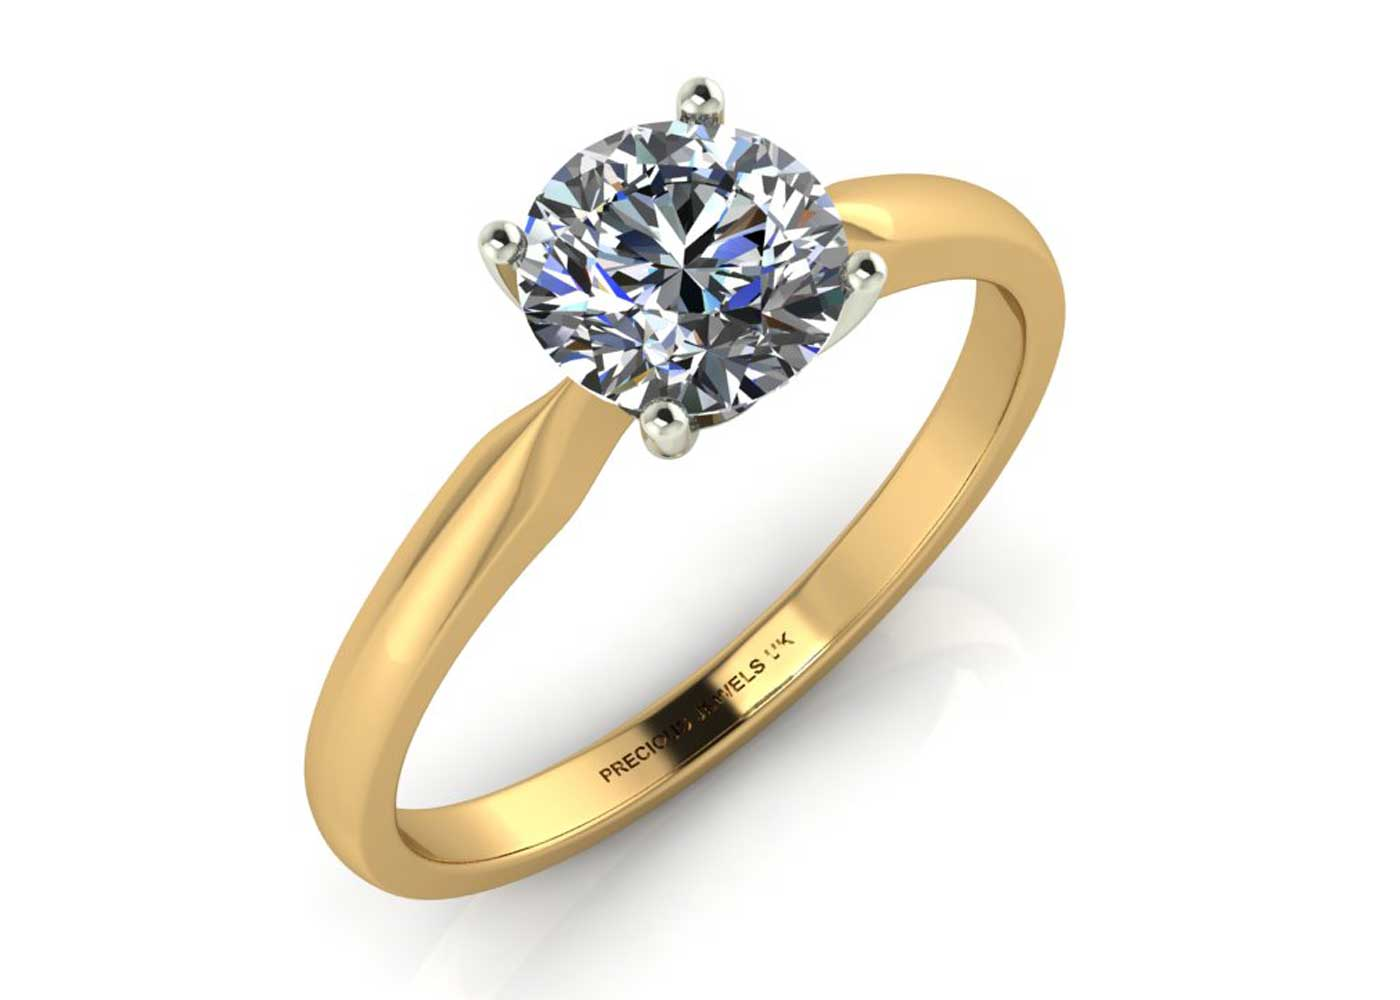 Lot 1 - 18ct Yellow Gold Claw Set Diamond Ring 0.50 Carats